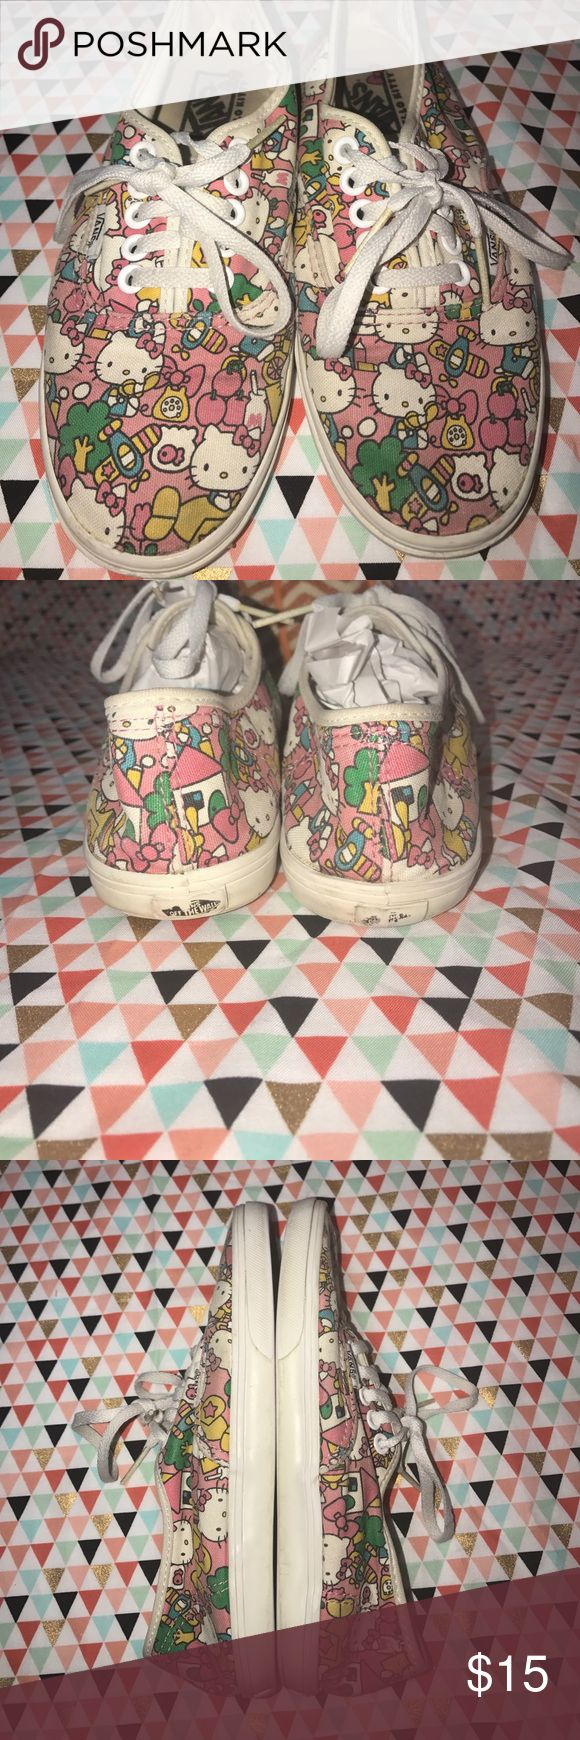 Hello Kitty Vans size 5 See pictures for condition. These have been worn but there is lots of love left! Vans Shoes Sneakers